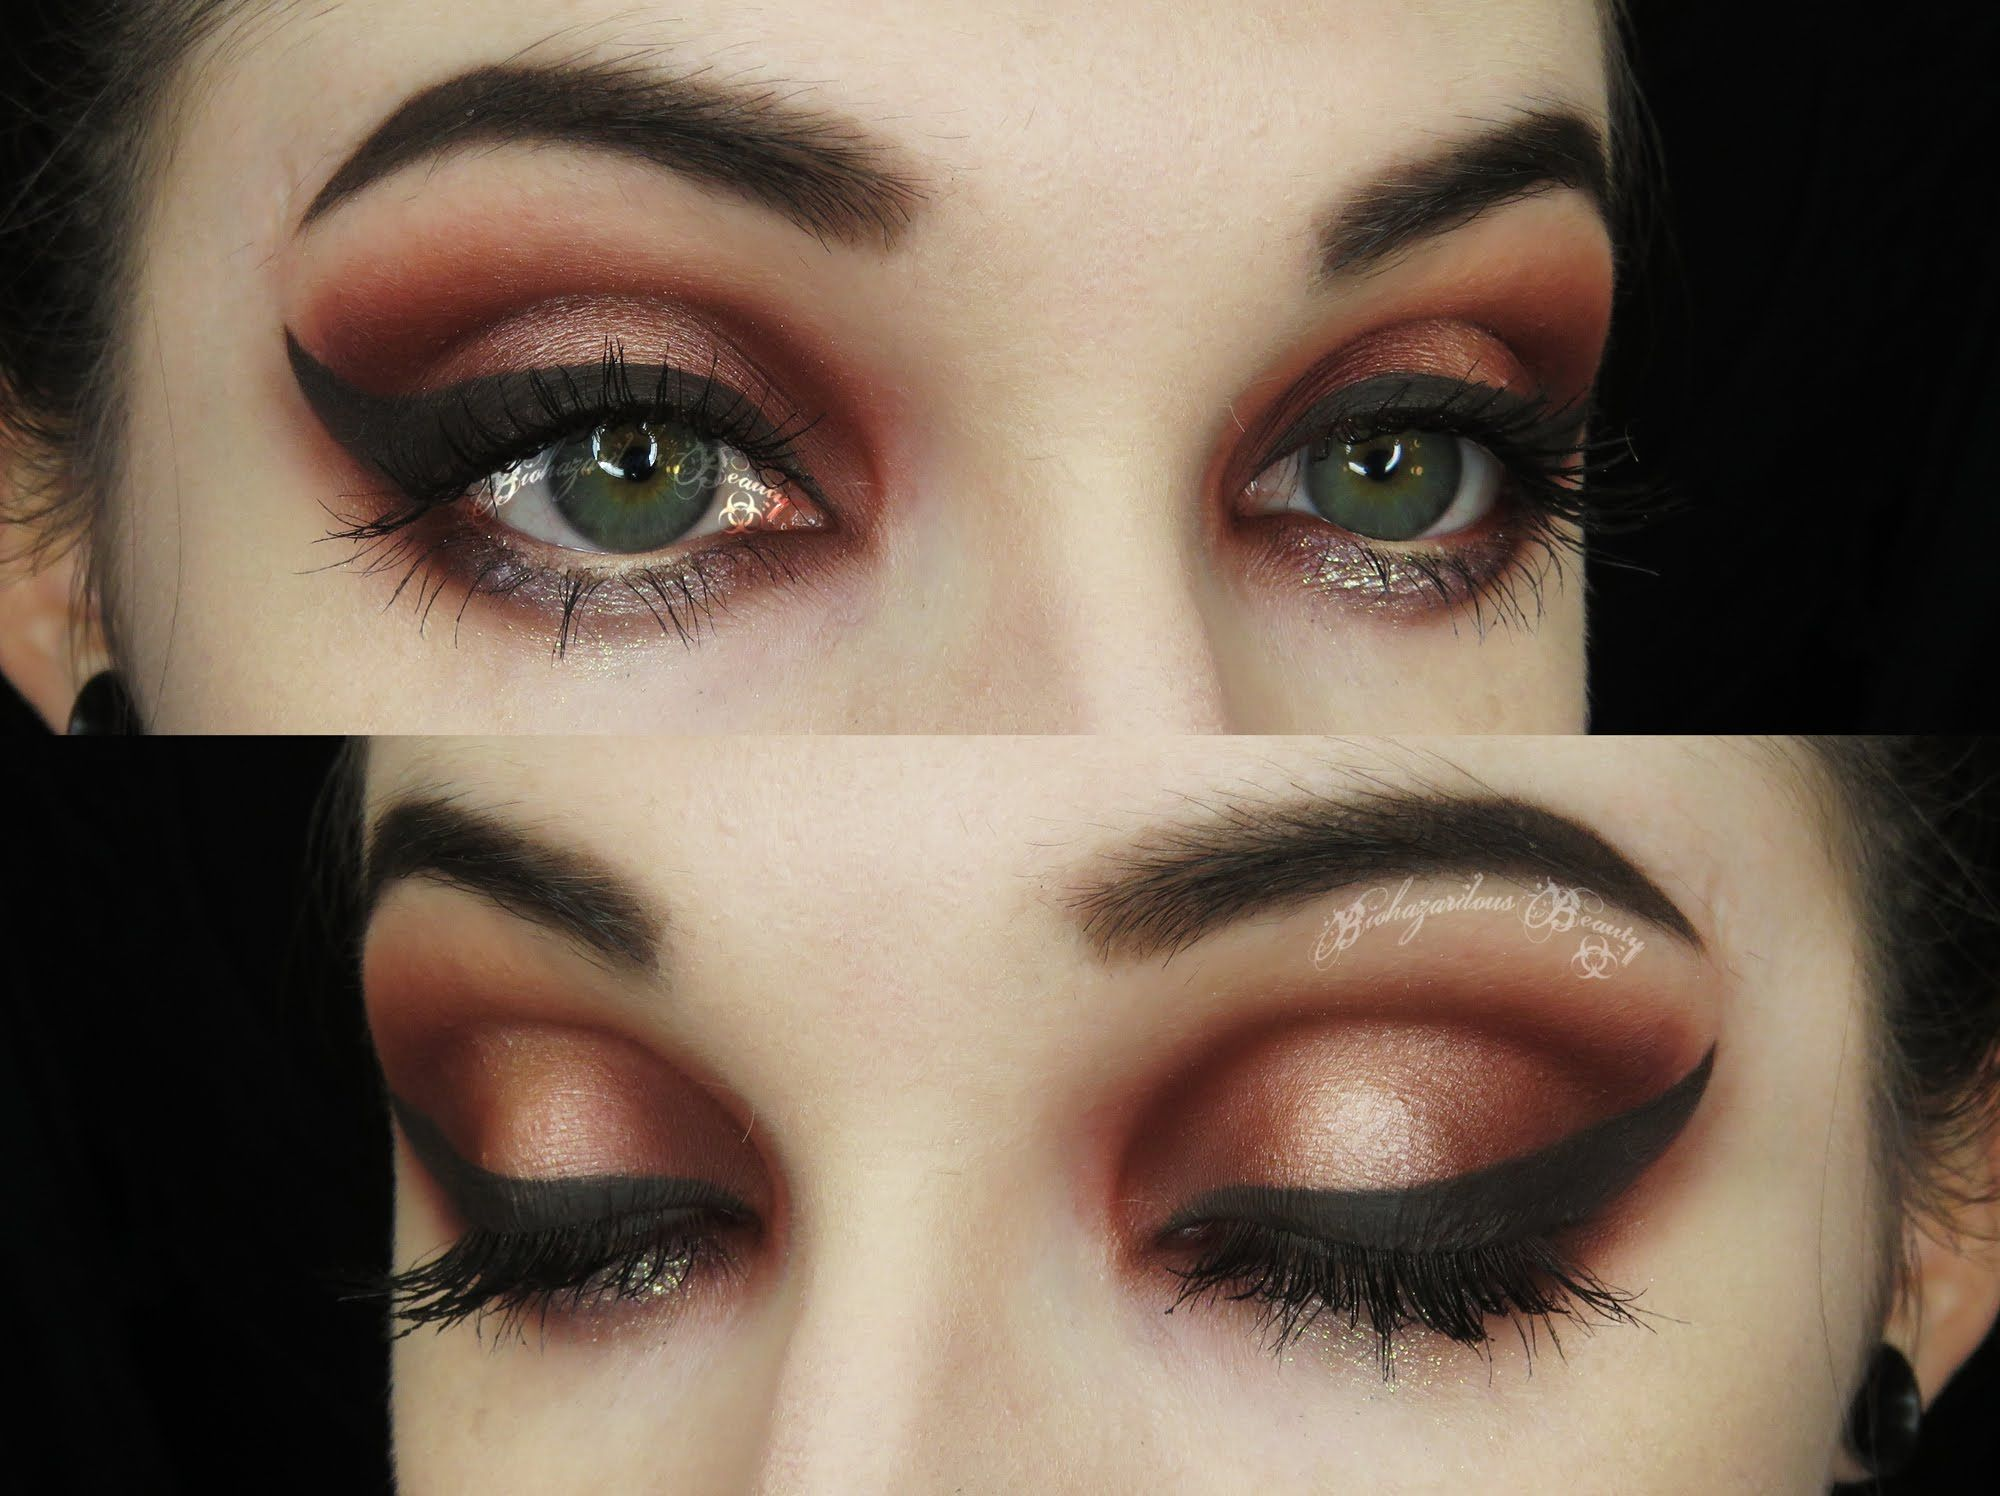 Tavolozza Trucchi ~ Nyx ultimate warm neutrals palette review tutorial! i love that